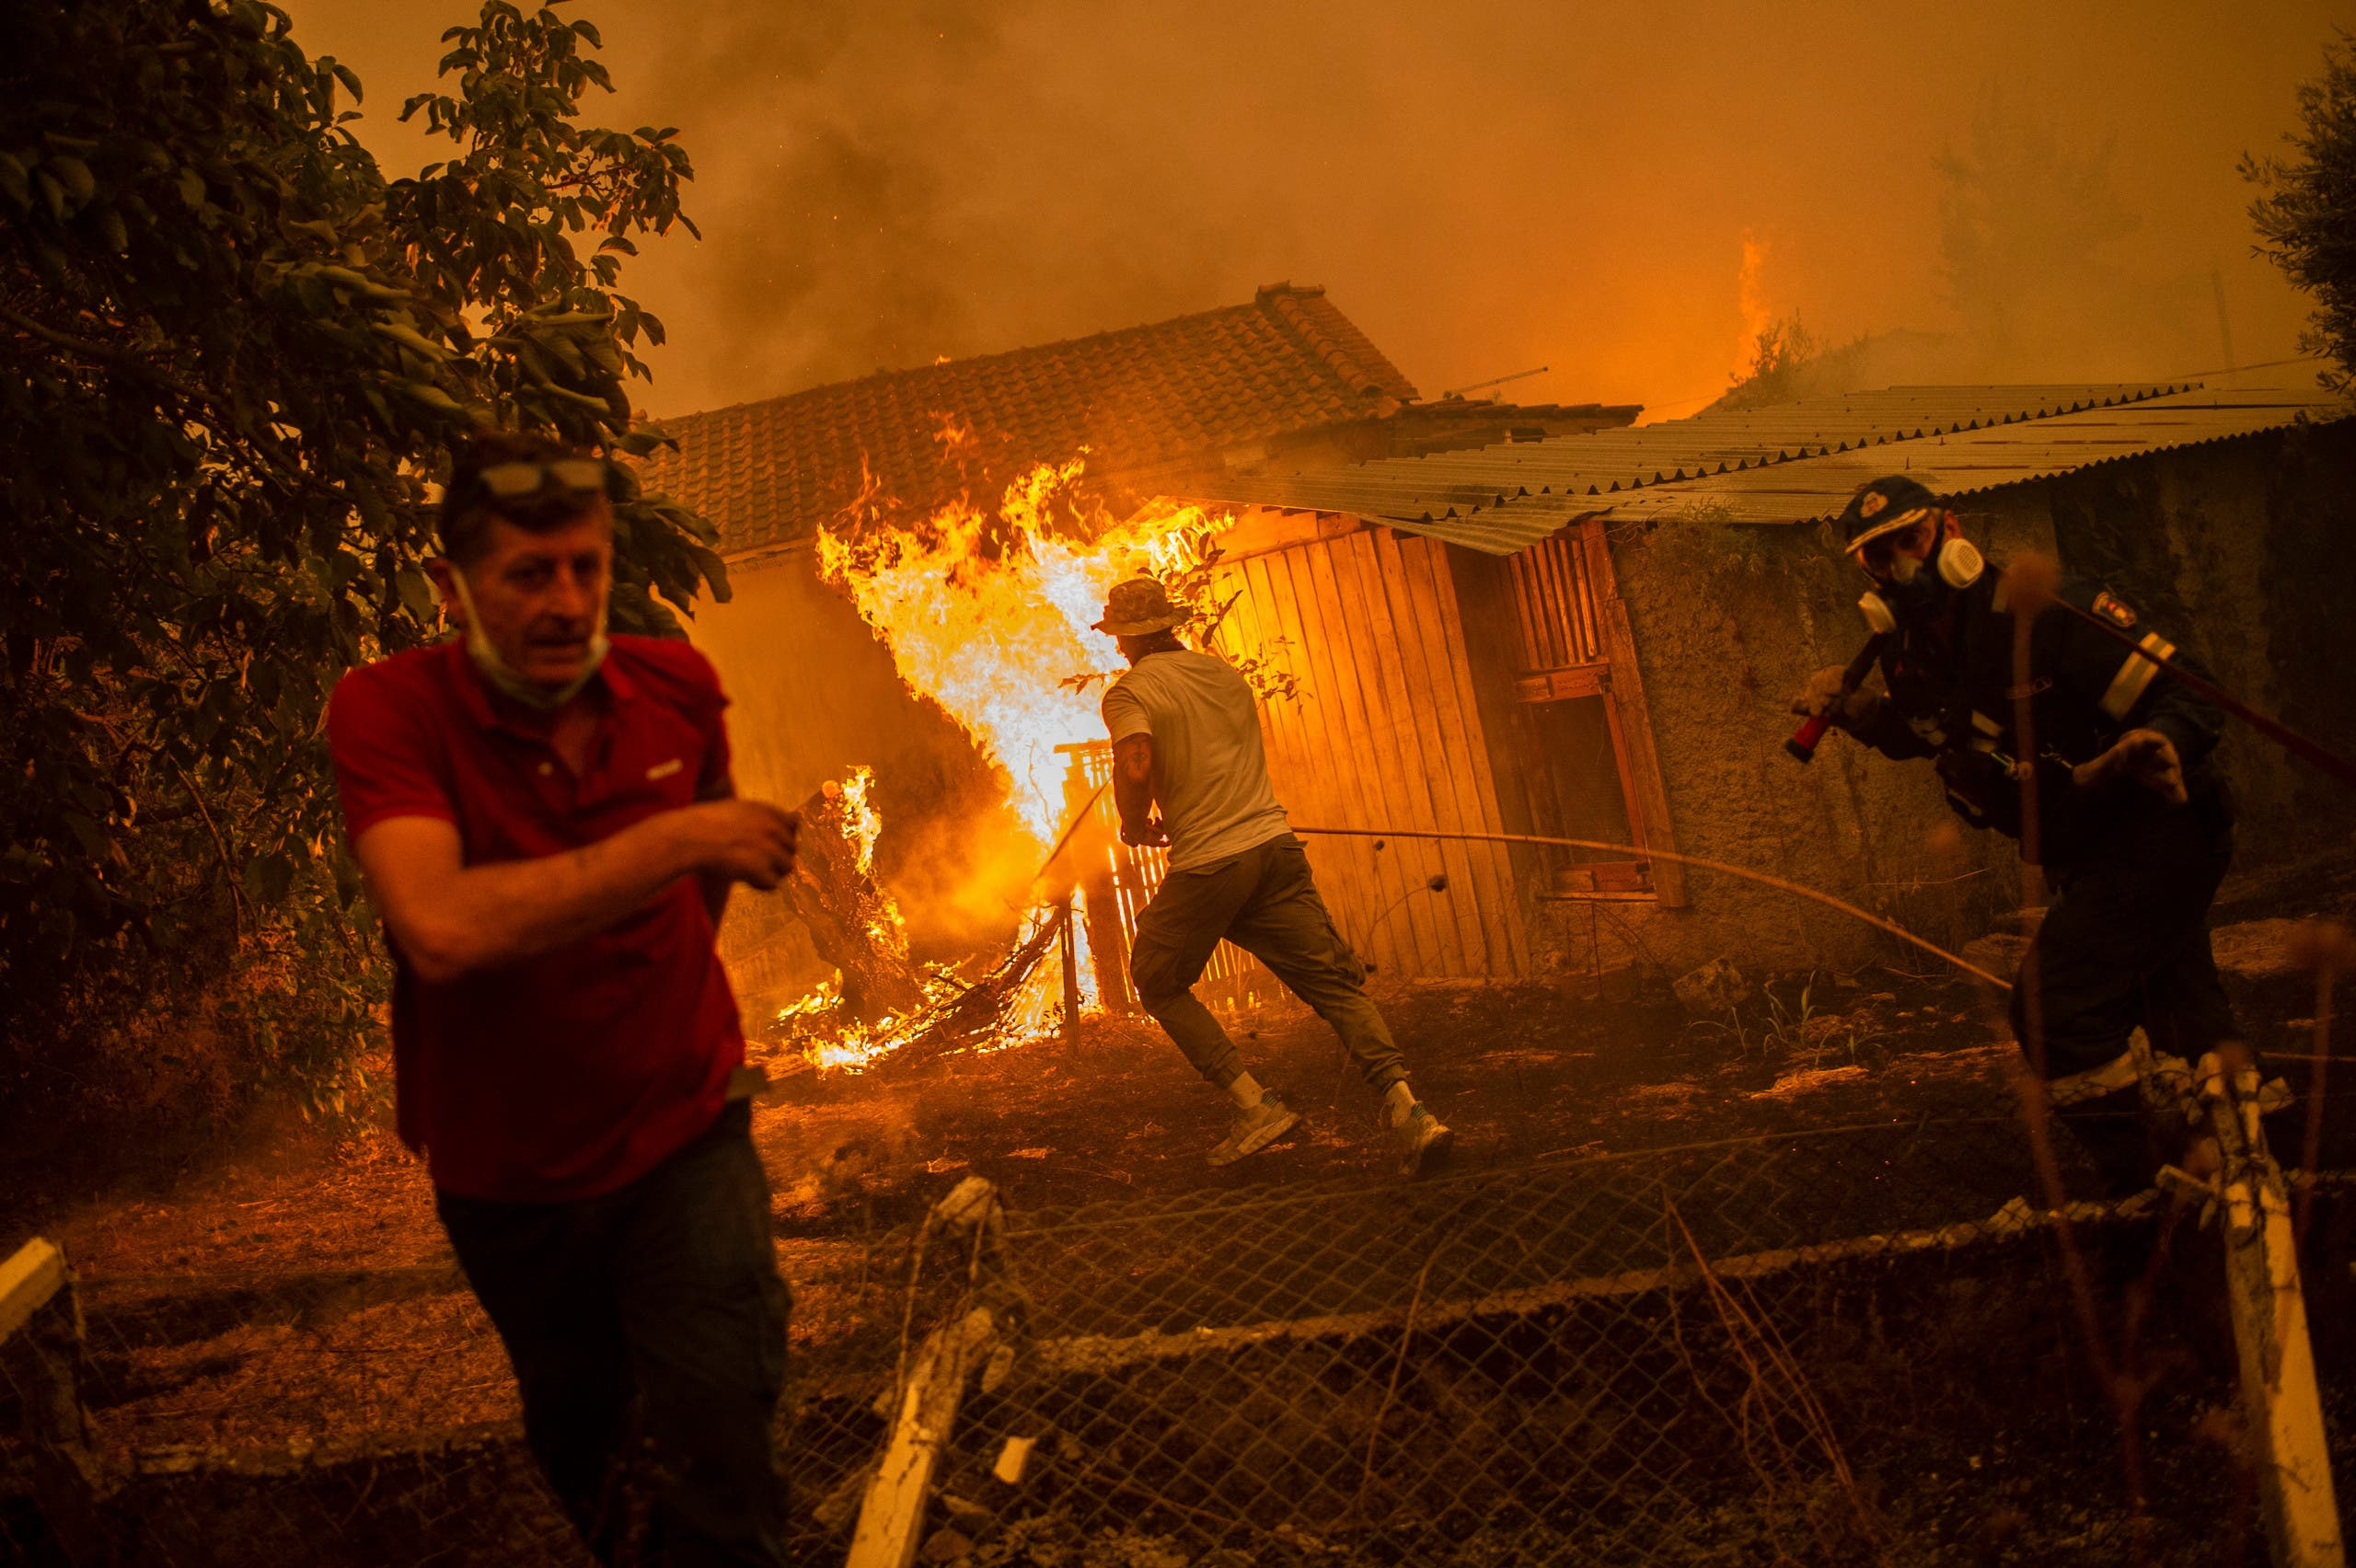 A firefighter and locals rush to a burning house in an attempt to extinguish forest fires that are approaching the village of Pefki on Evia (Euboea) island, Greece's second largest island, on August 8, 2021. (AFP)